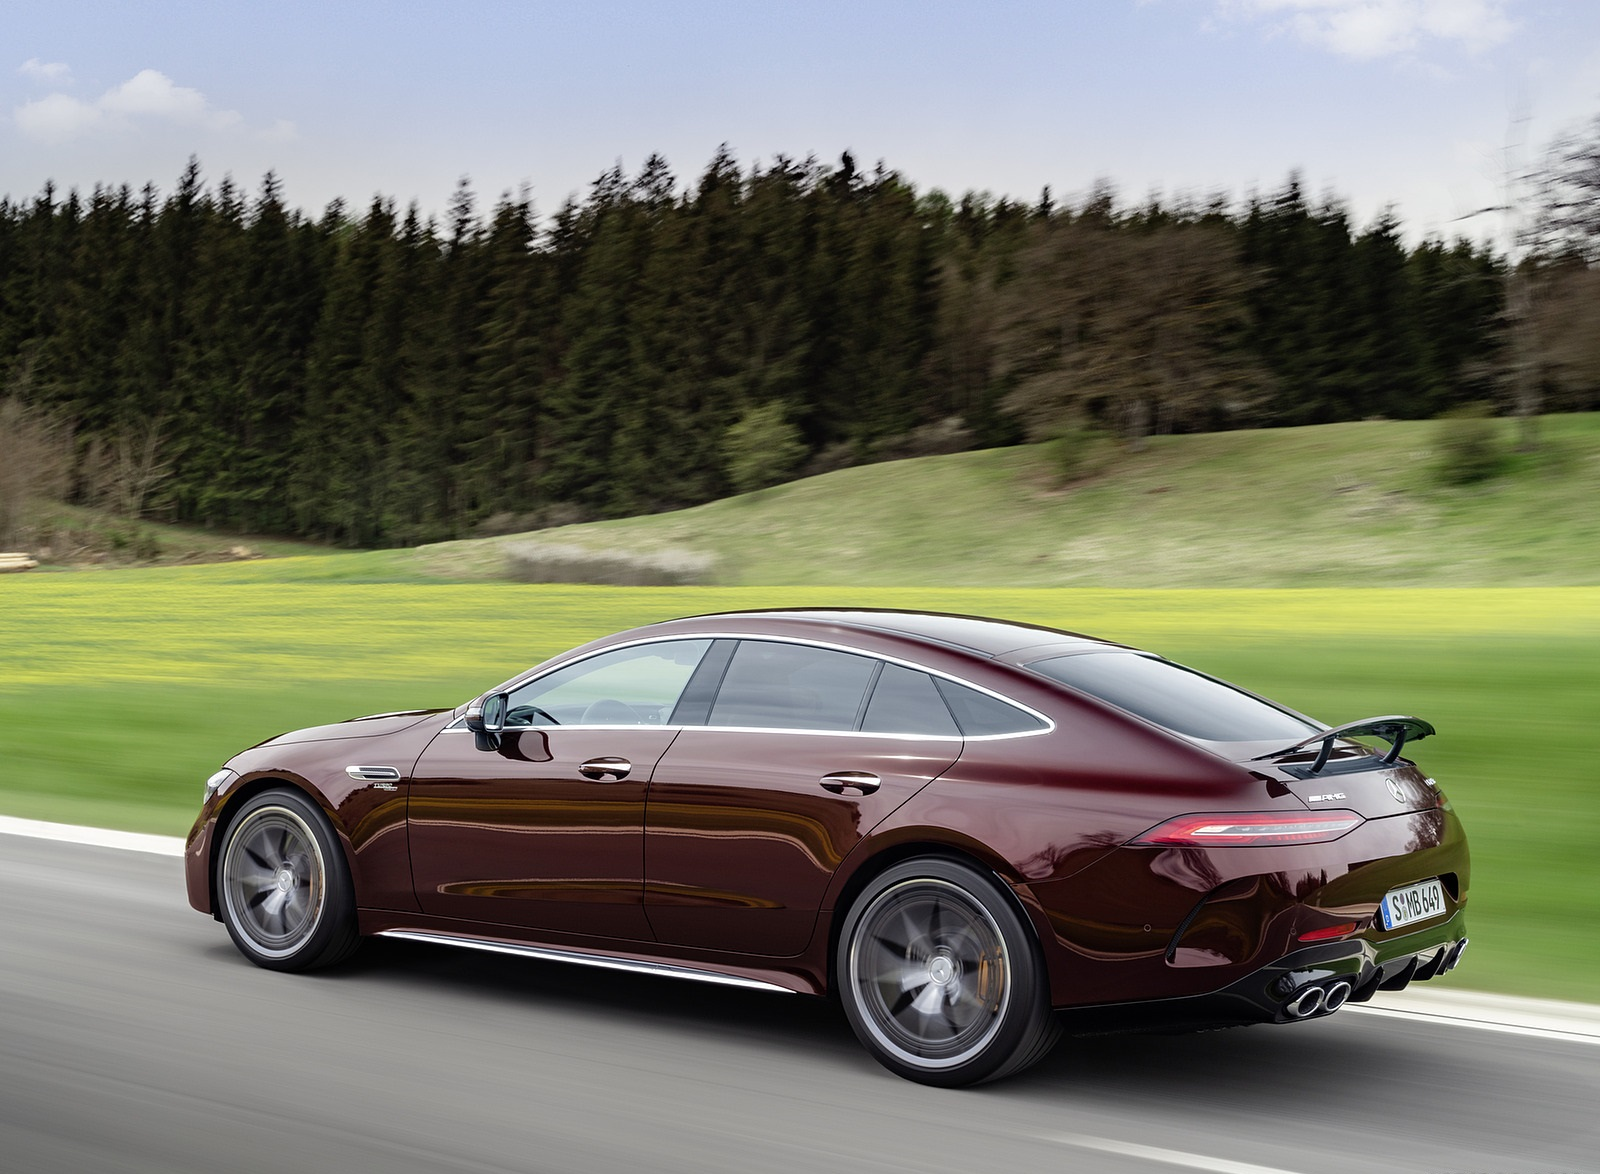 2022 Mercedes-AMG GT 53 4MATIC+ 4-Door Coupe (Color: Rubellite Red) Rear Three-Quarter Wallpapers (4)